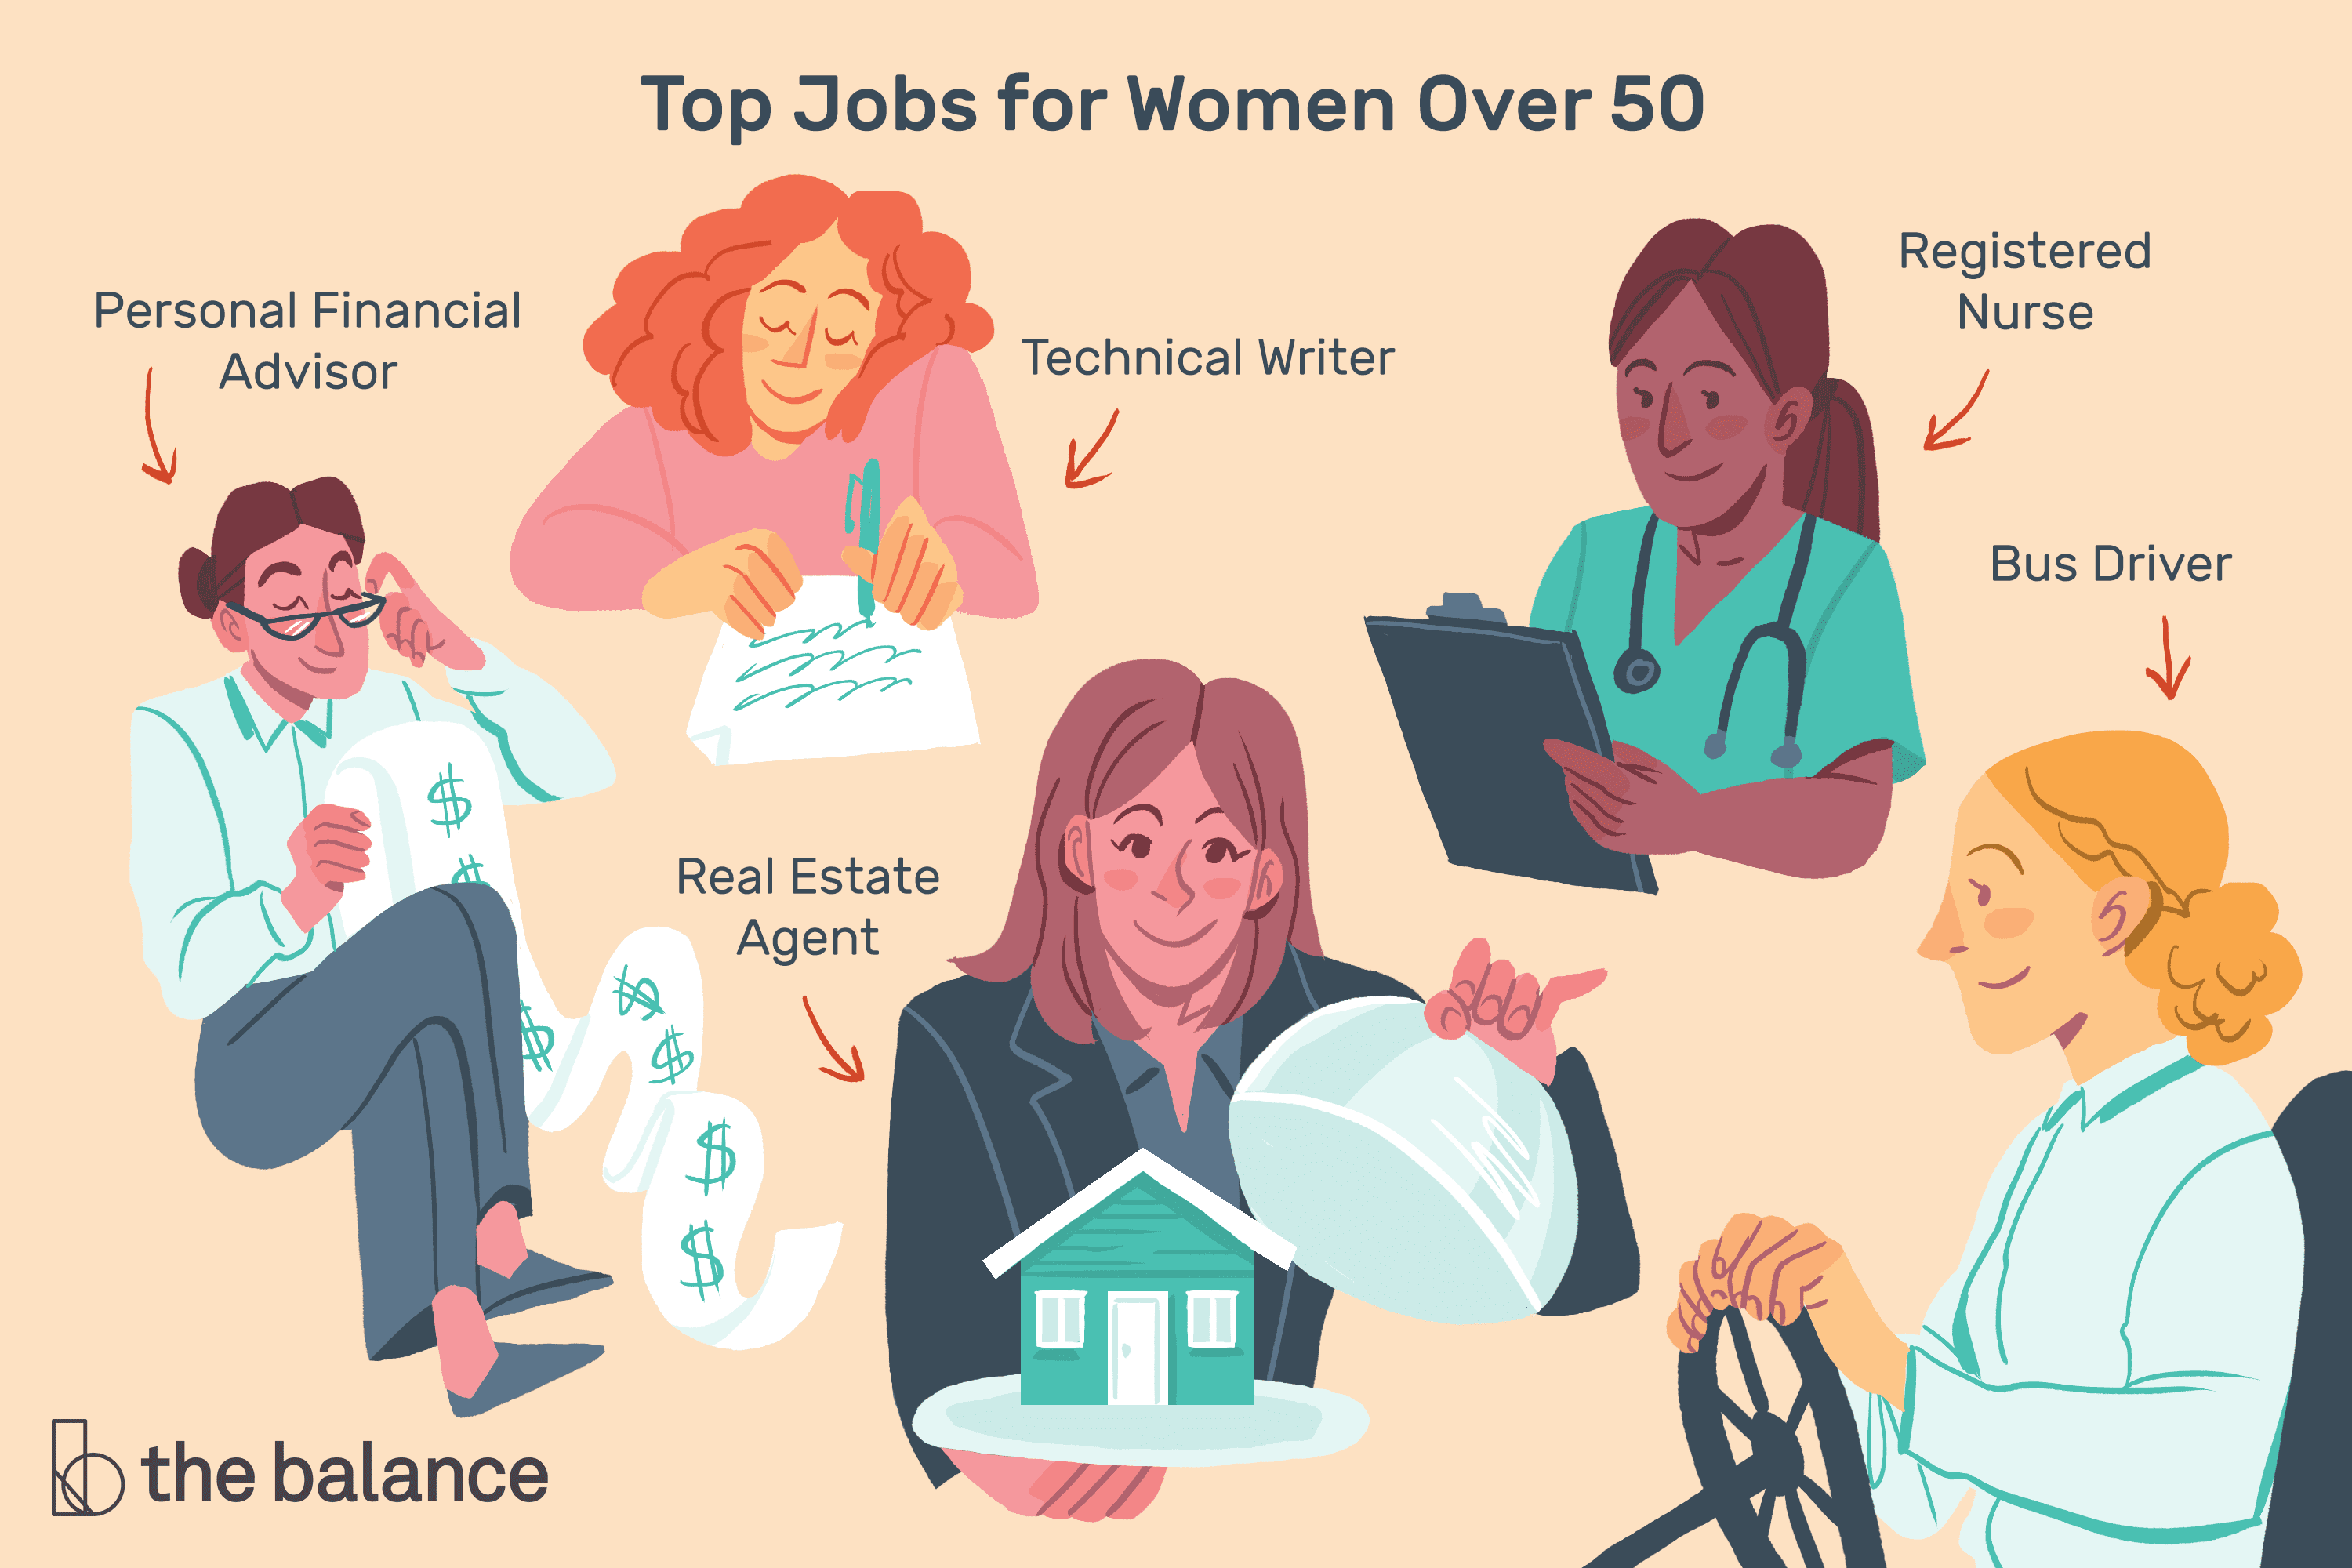 Top 10 Best Jobs For Women Over 50